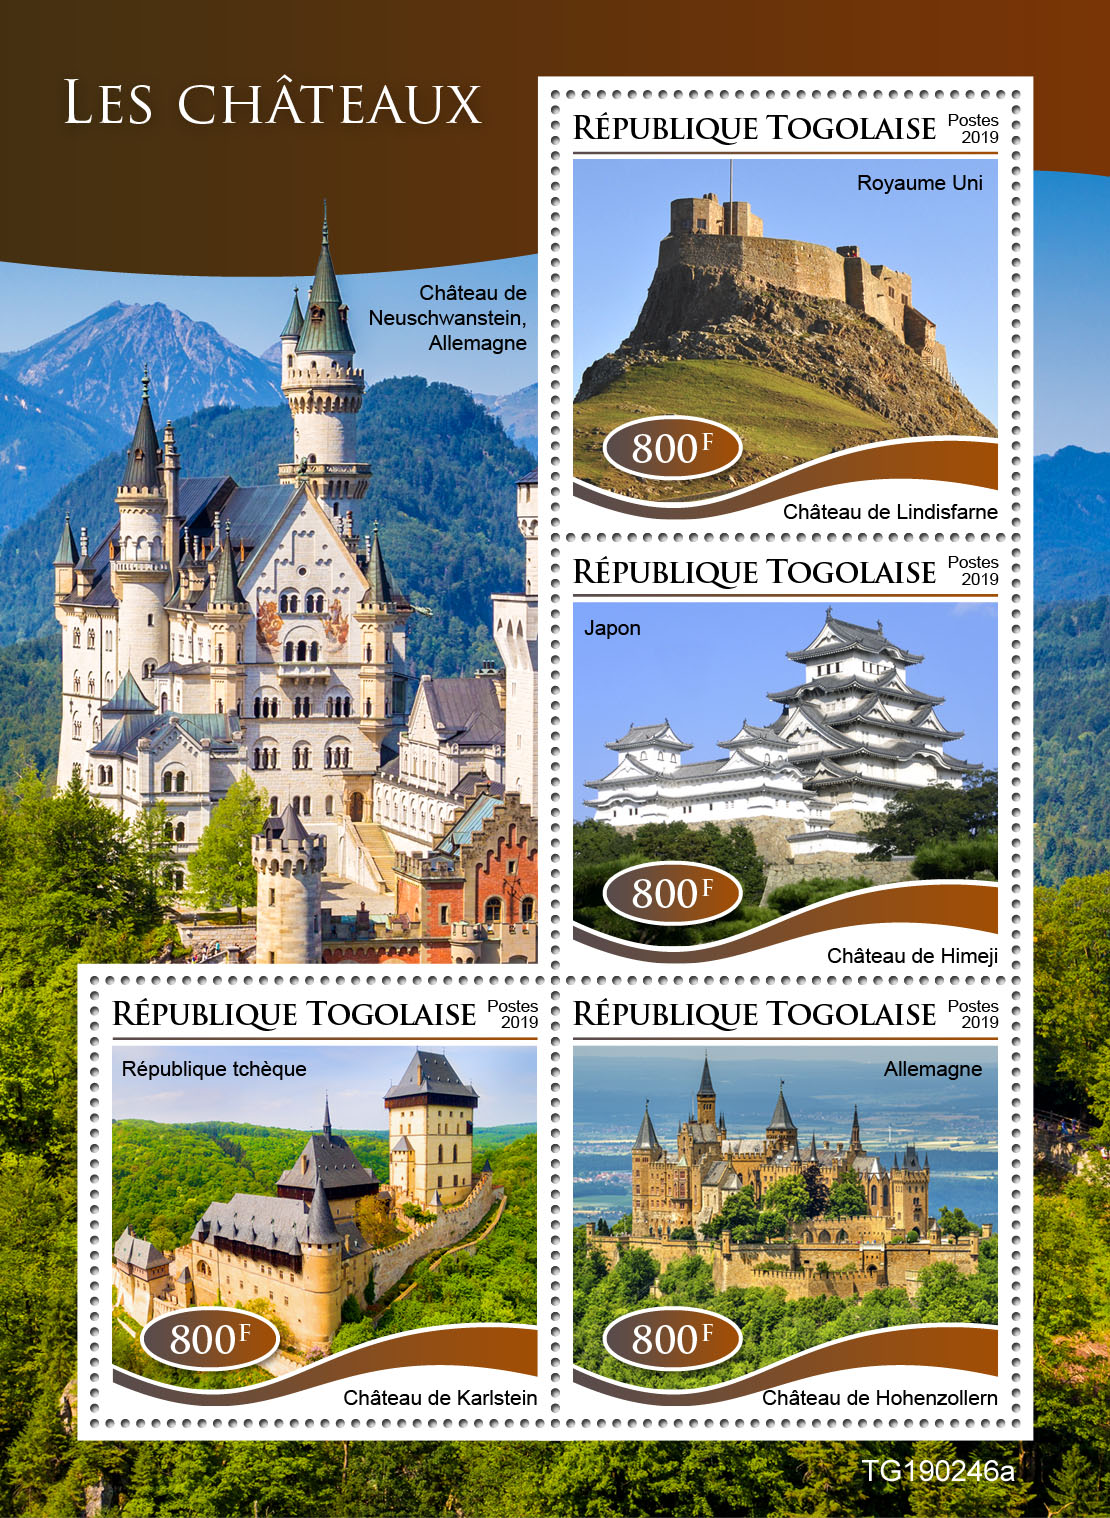 Castles - Issue of Togo postage stamps